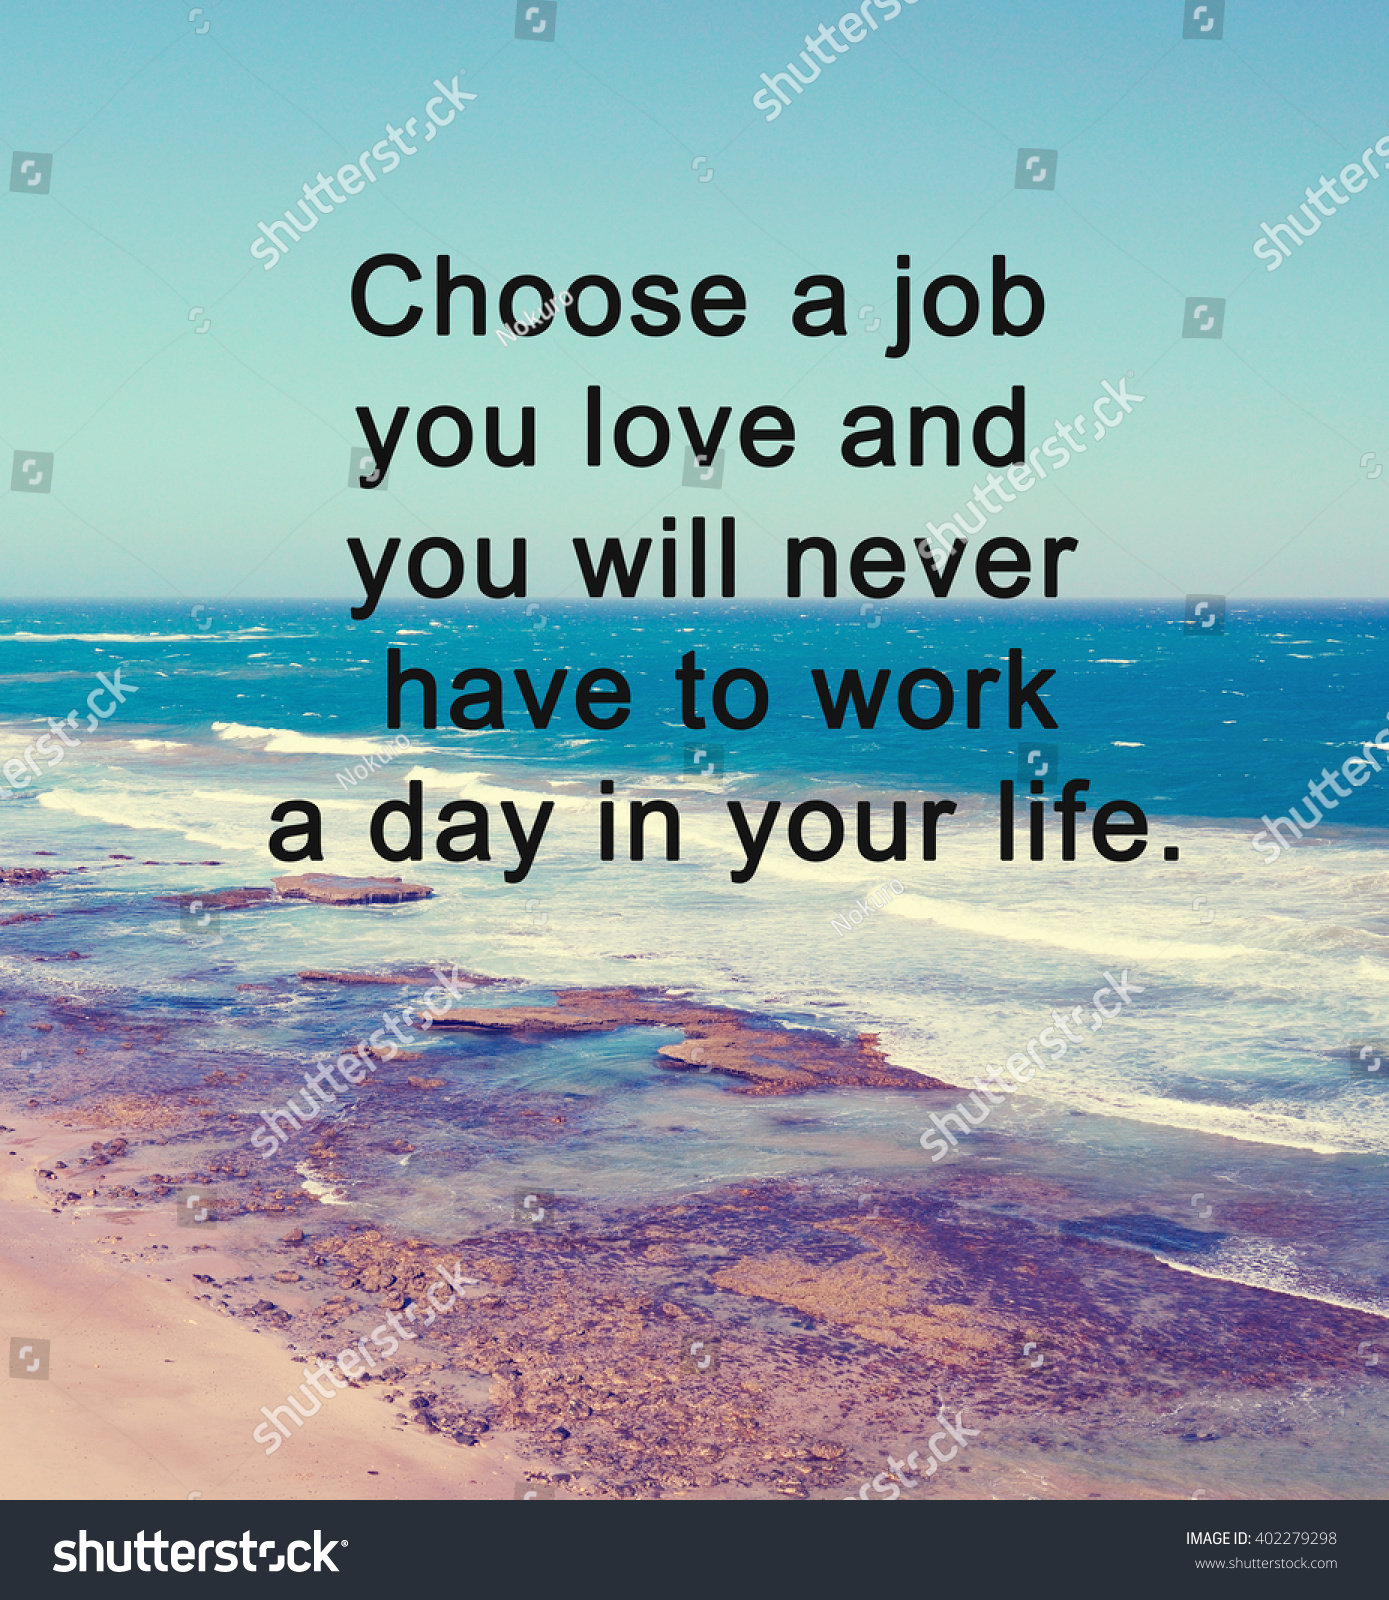 Motivational Life Quotes Of The Day Inspirational Life Quote Phrase Choose Job Stock Photo 402279298